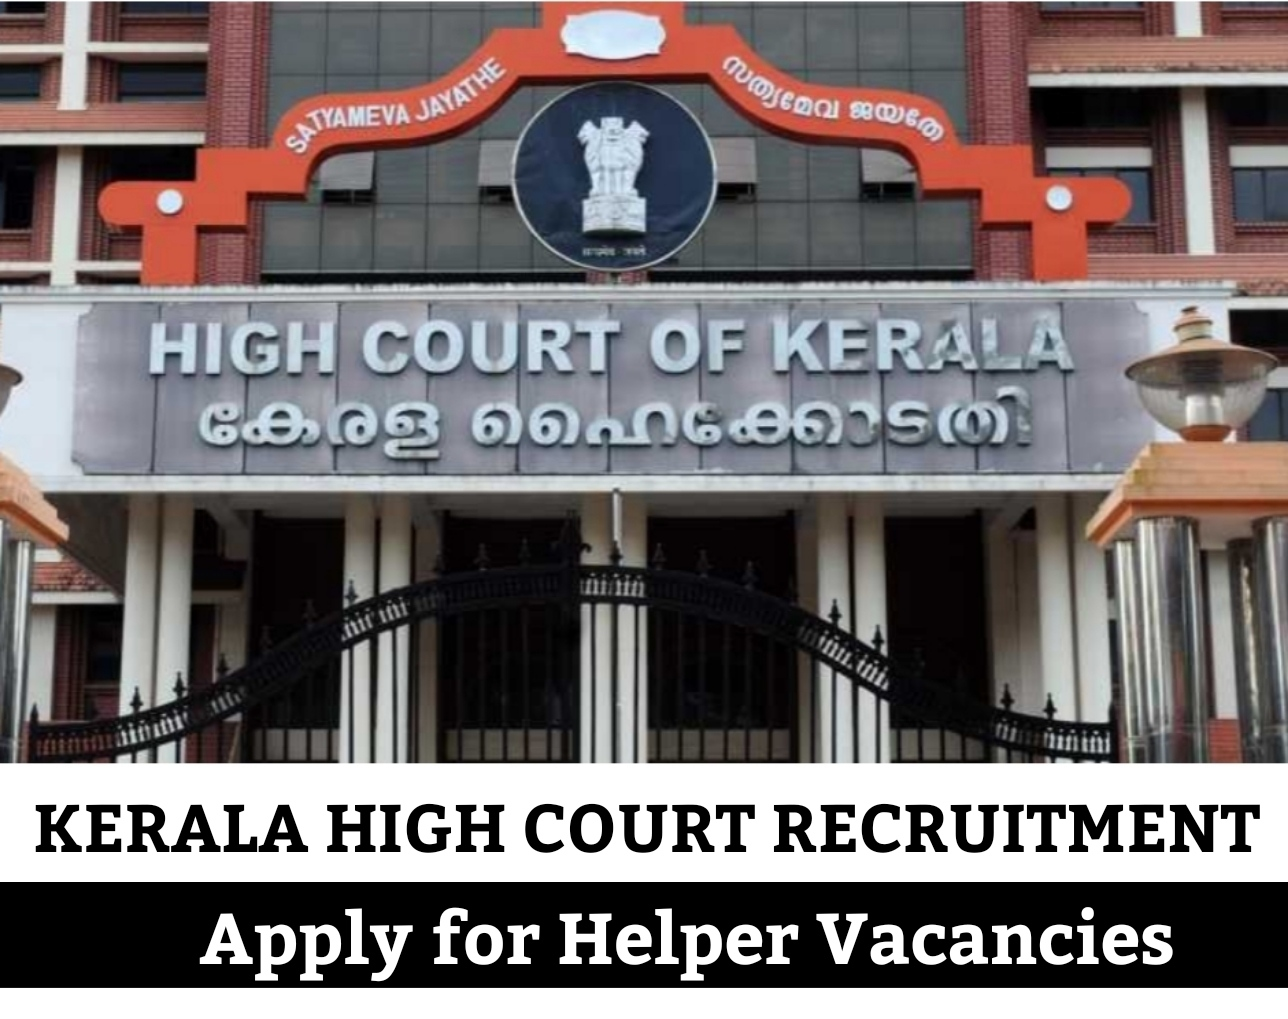 Kerala High Court Helper Recruitment 2020